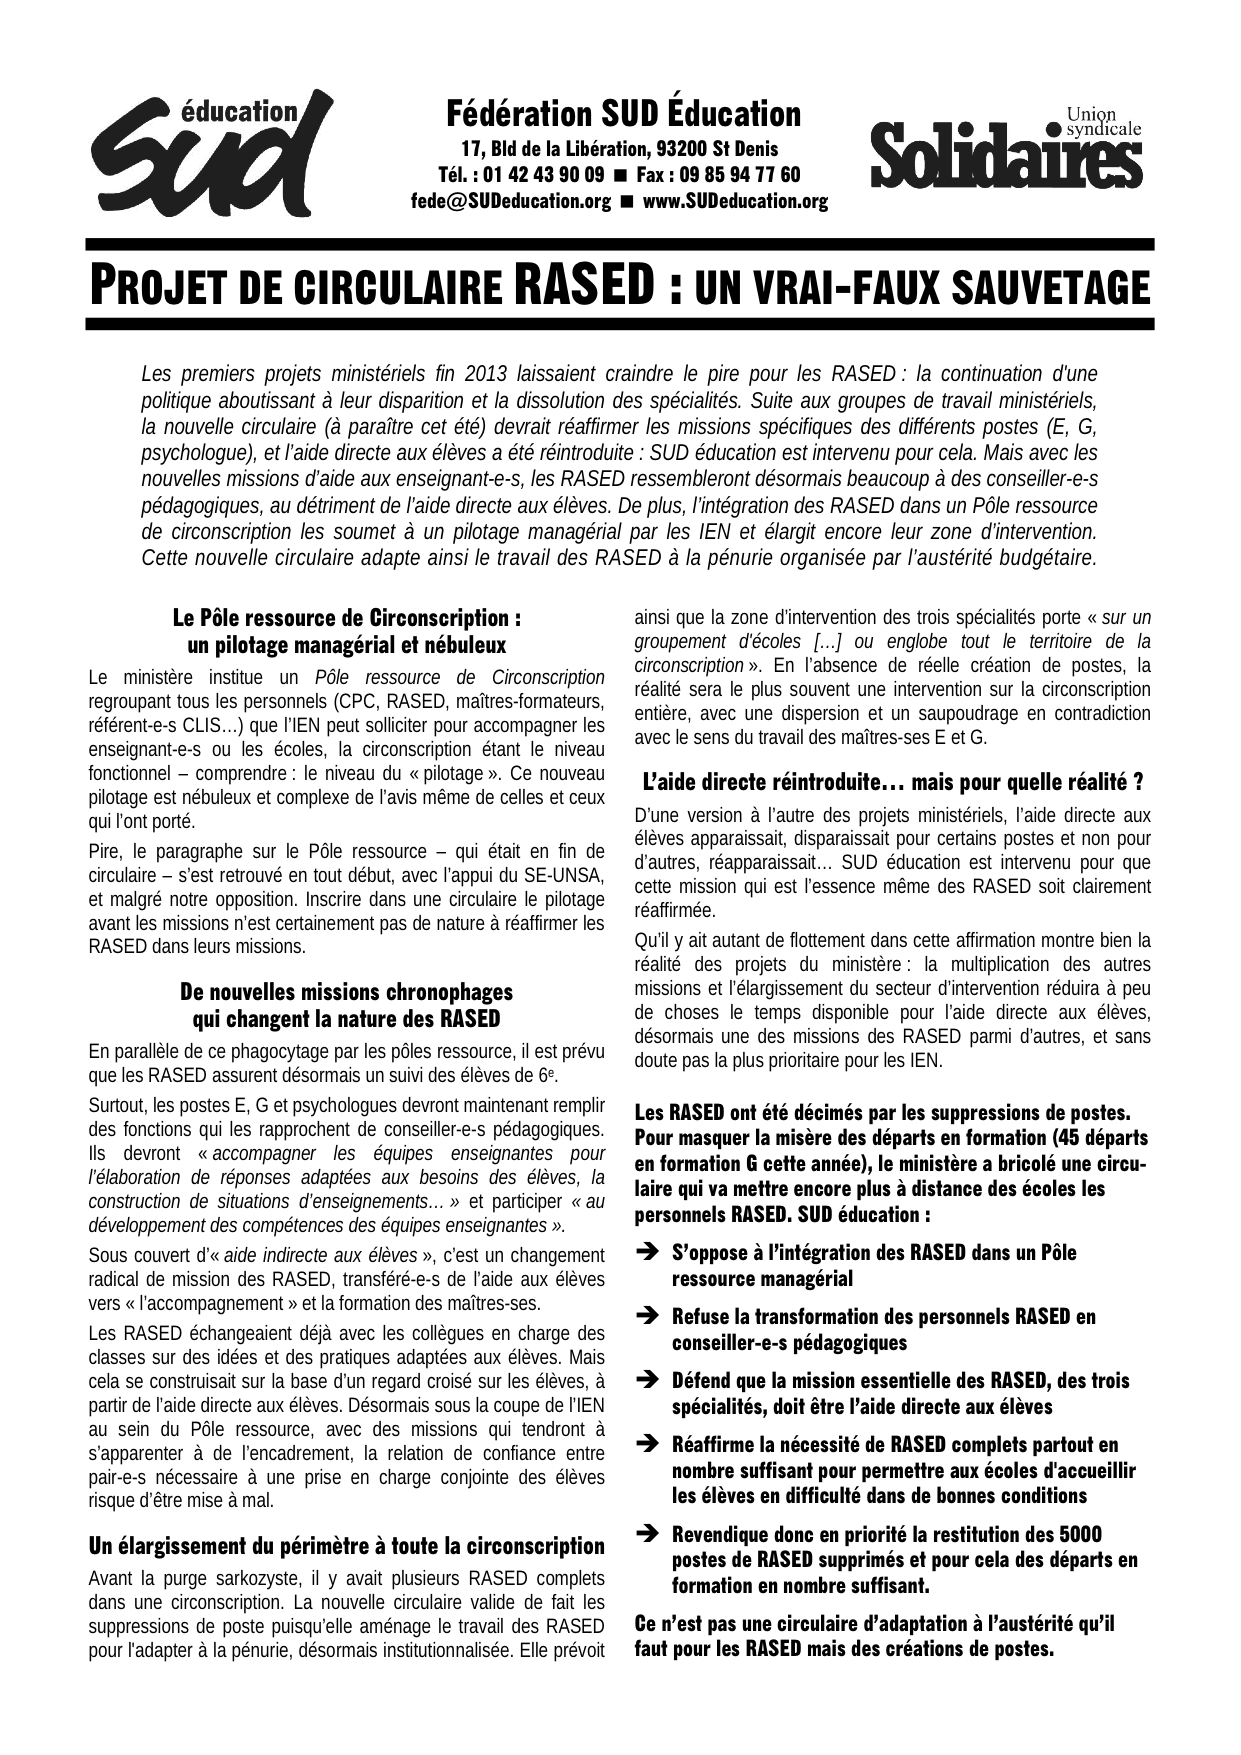 1tract_circulaire-rased-juin-2014